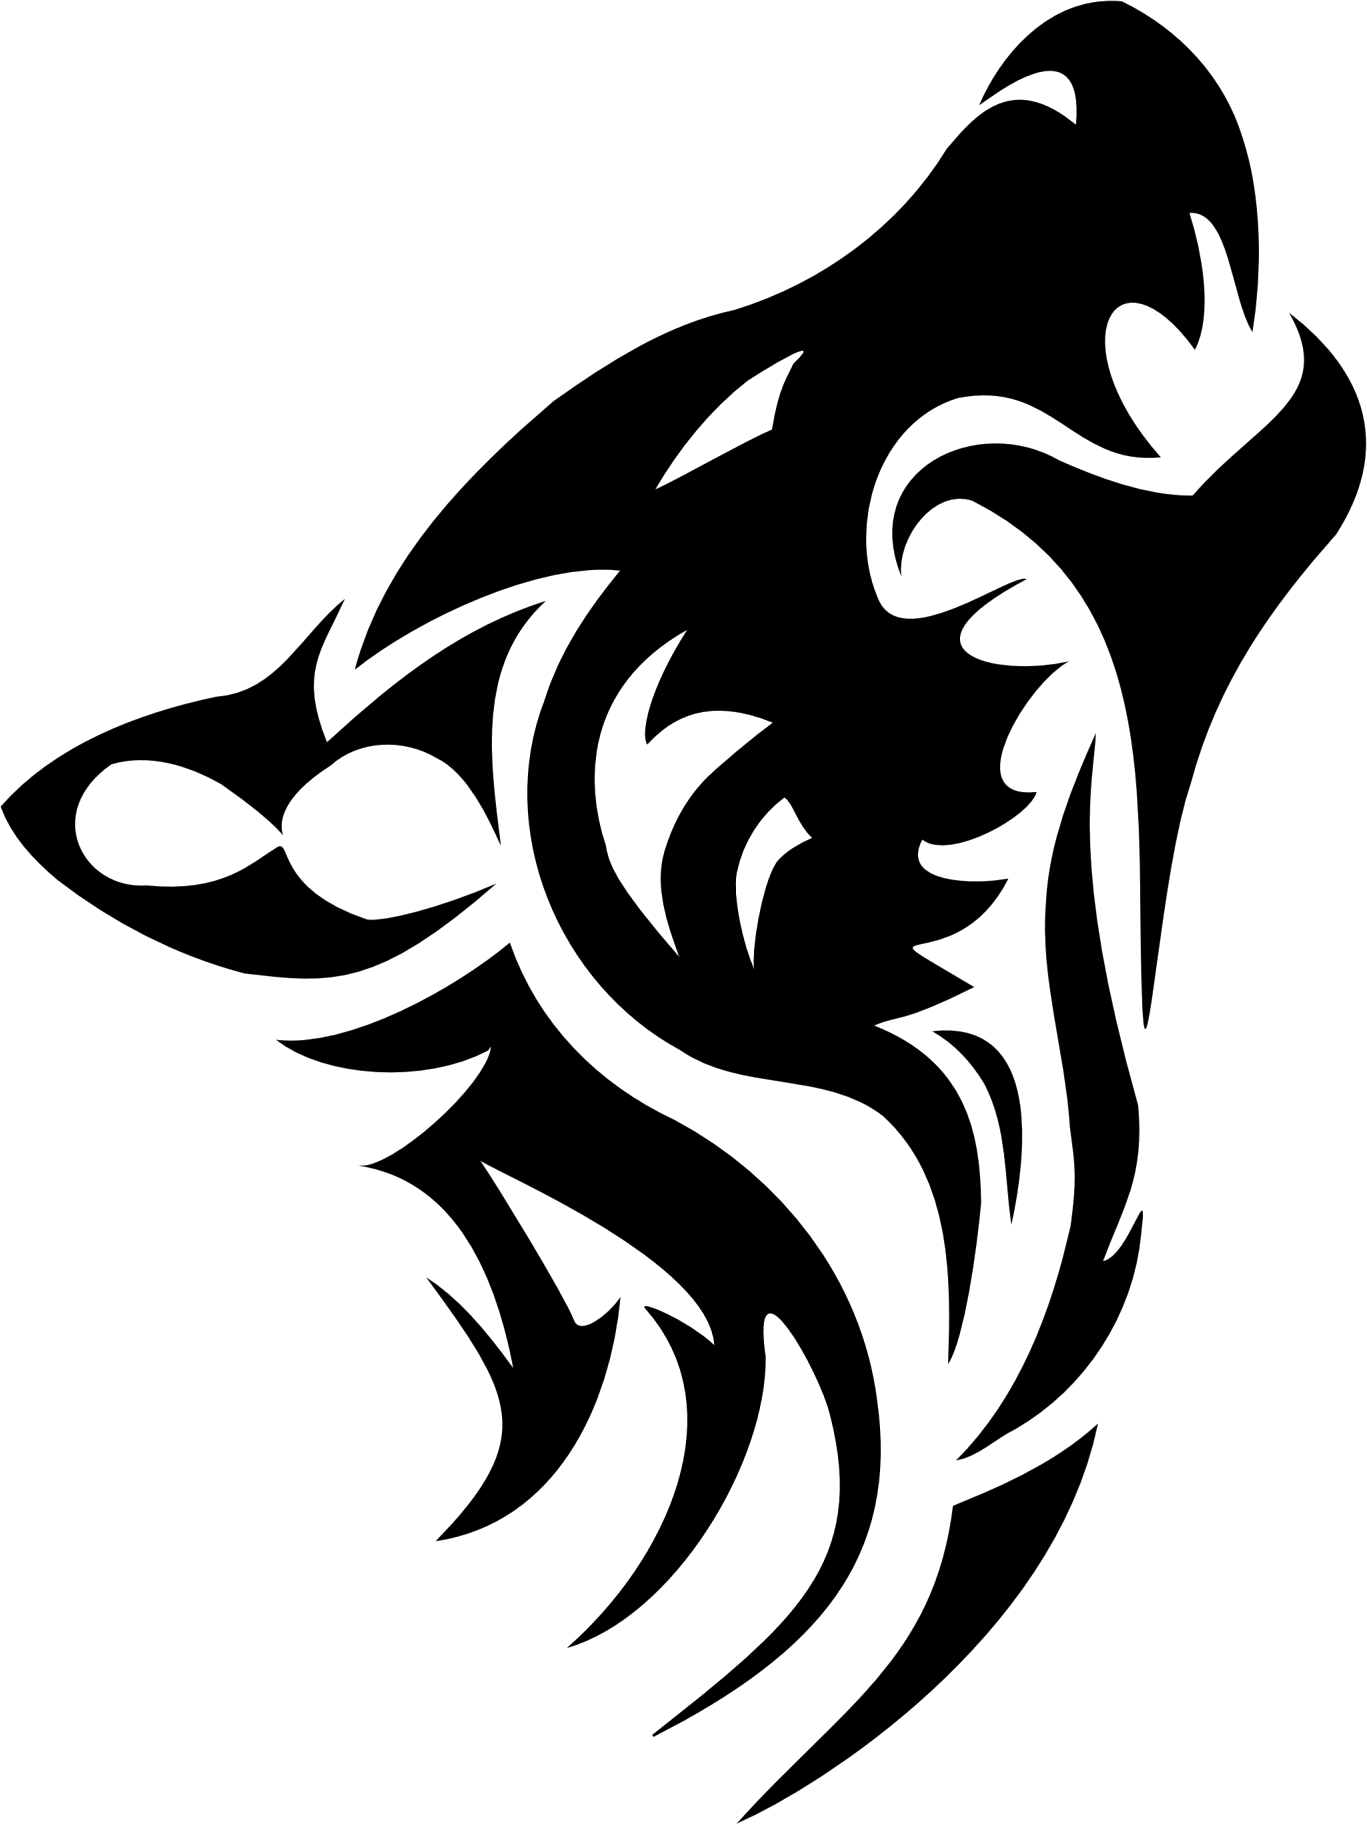 Wing clipart wolf. Tattoos png transparent images